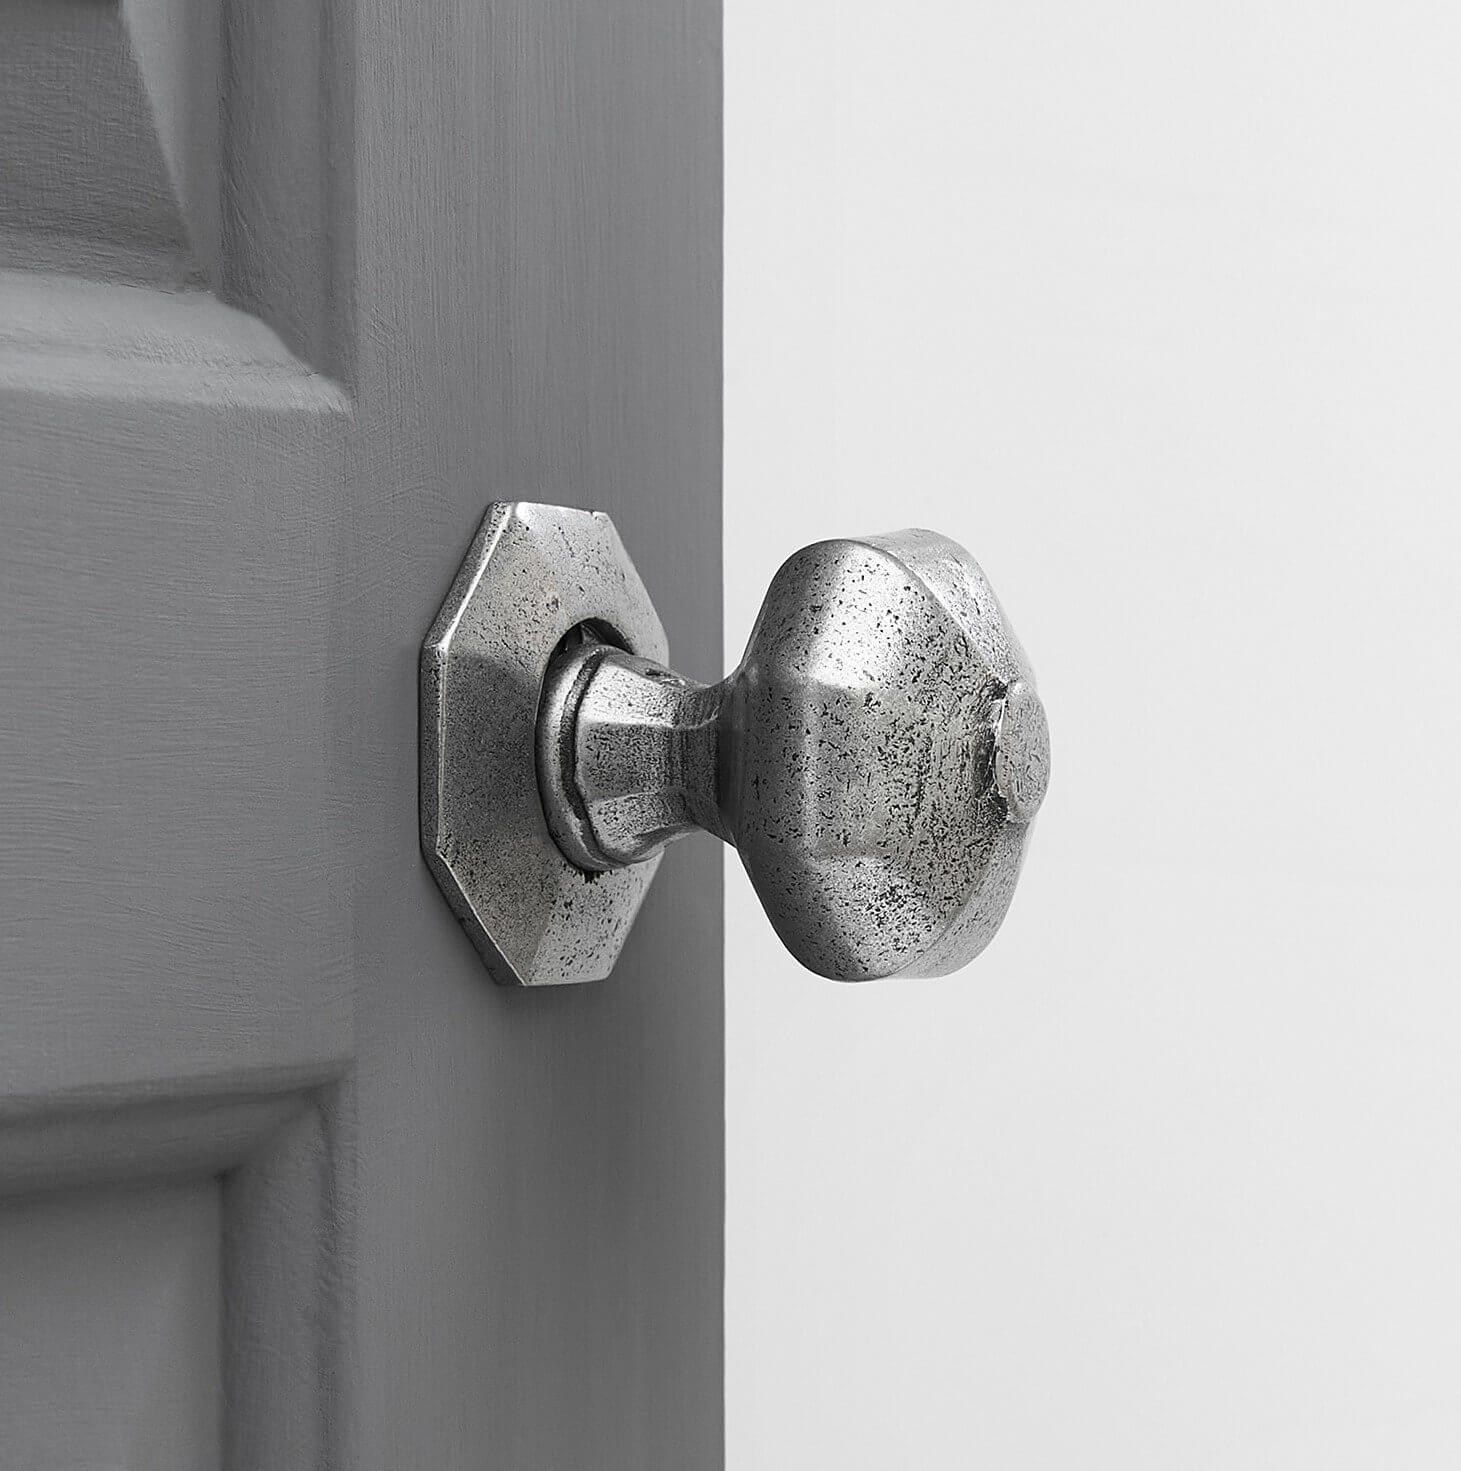 Hand Forged Octagonal Door Knobs (Pair) - Pewter